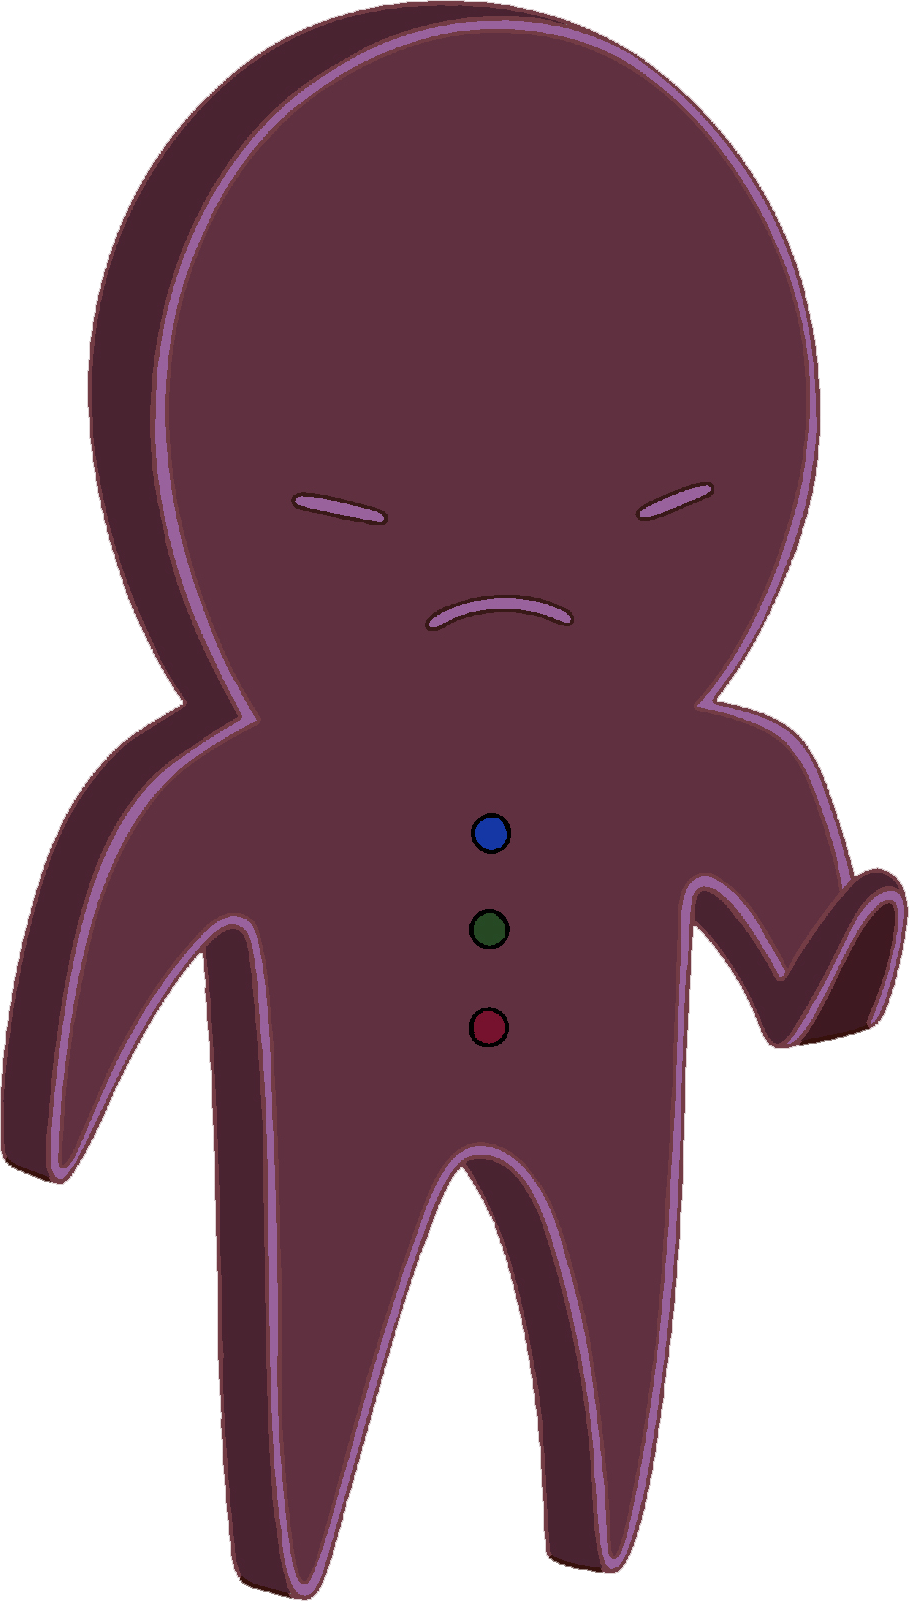 Blood clipart smudge. Image png adventure time